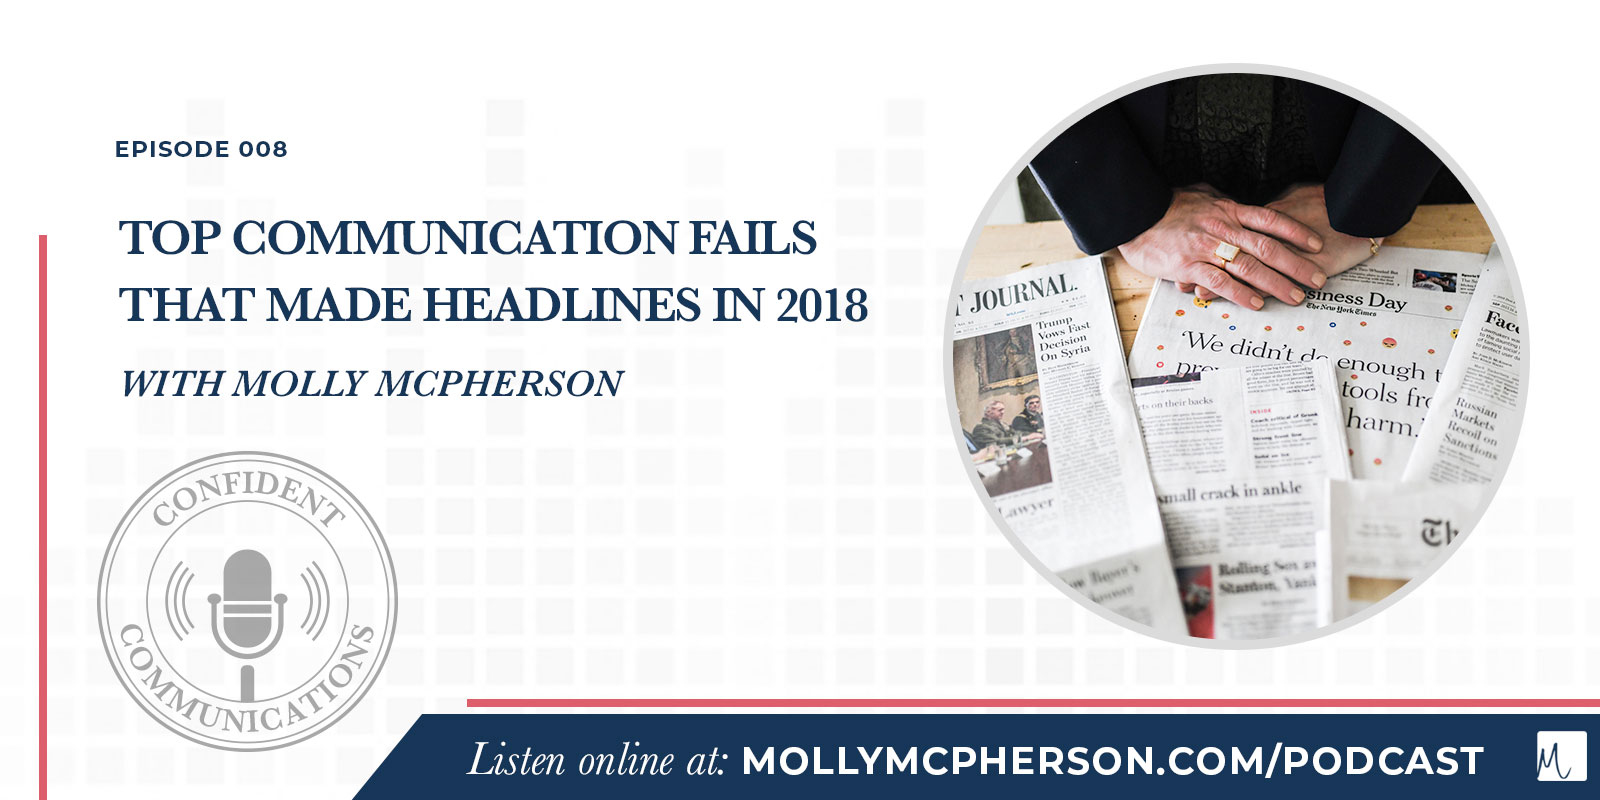 Top Communication Fails that Made Headlines in 2018